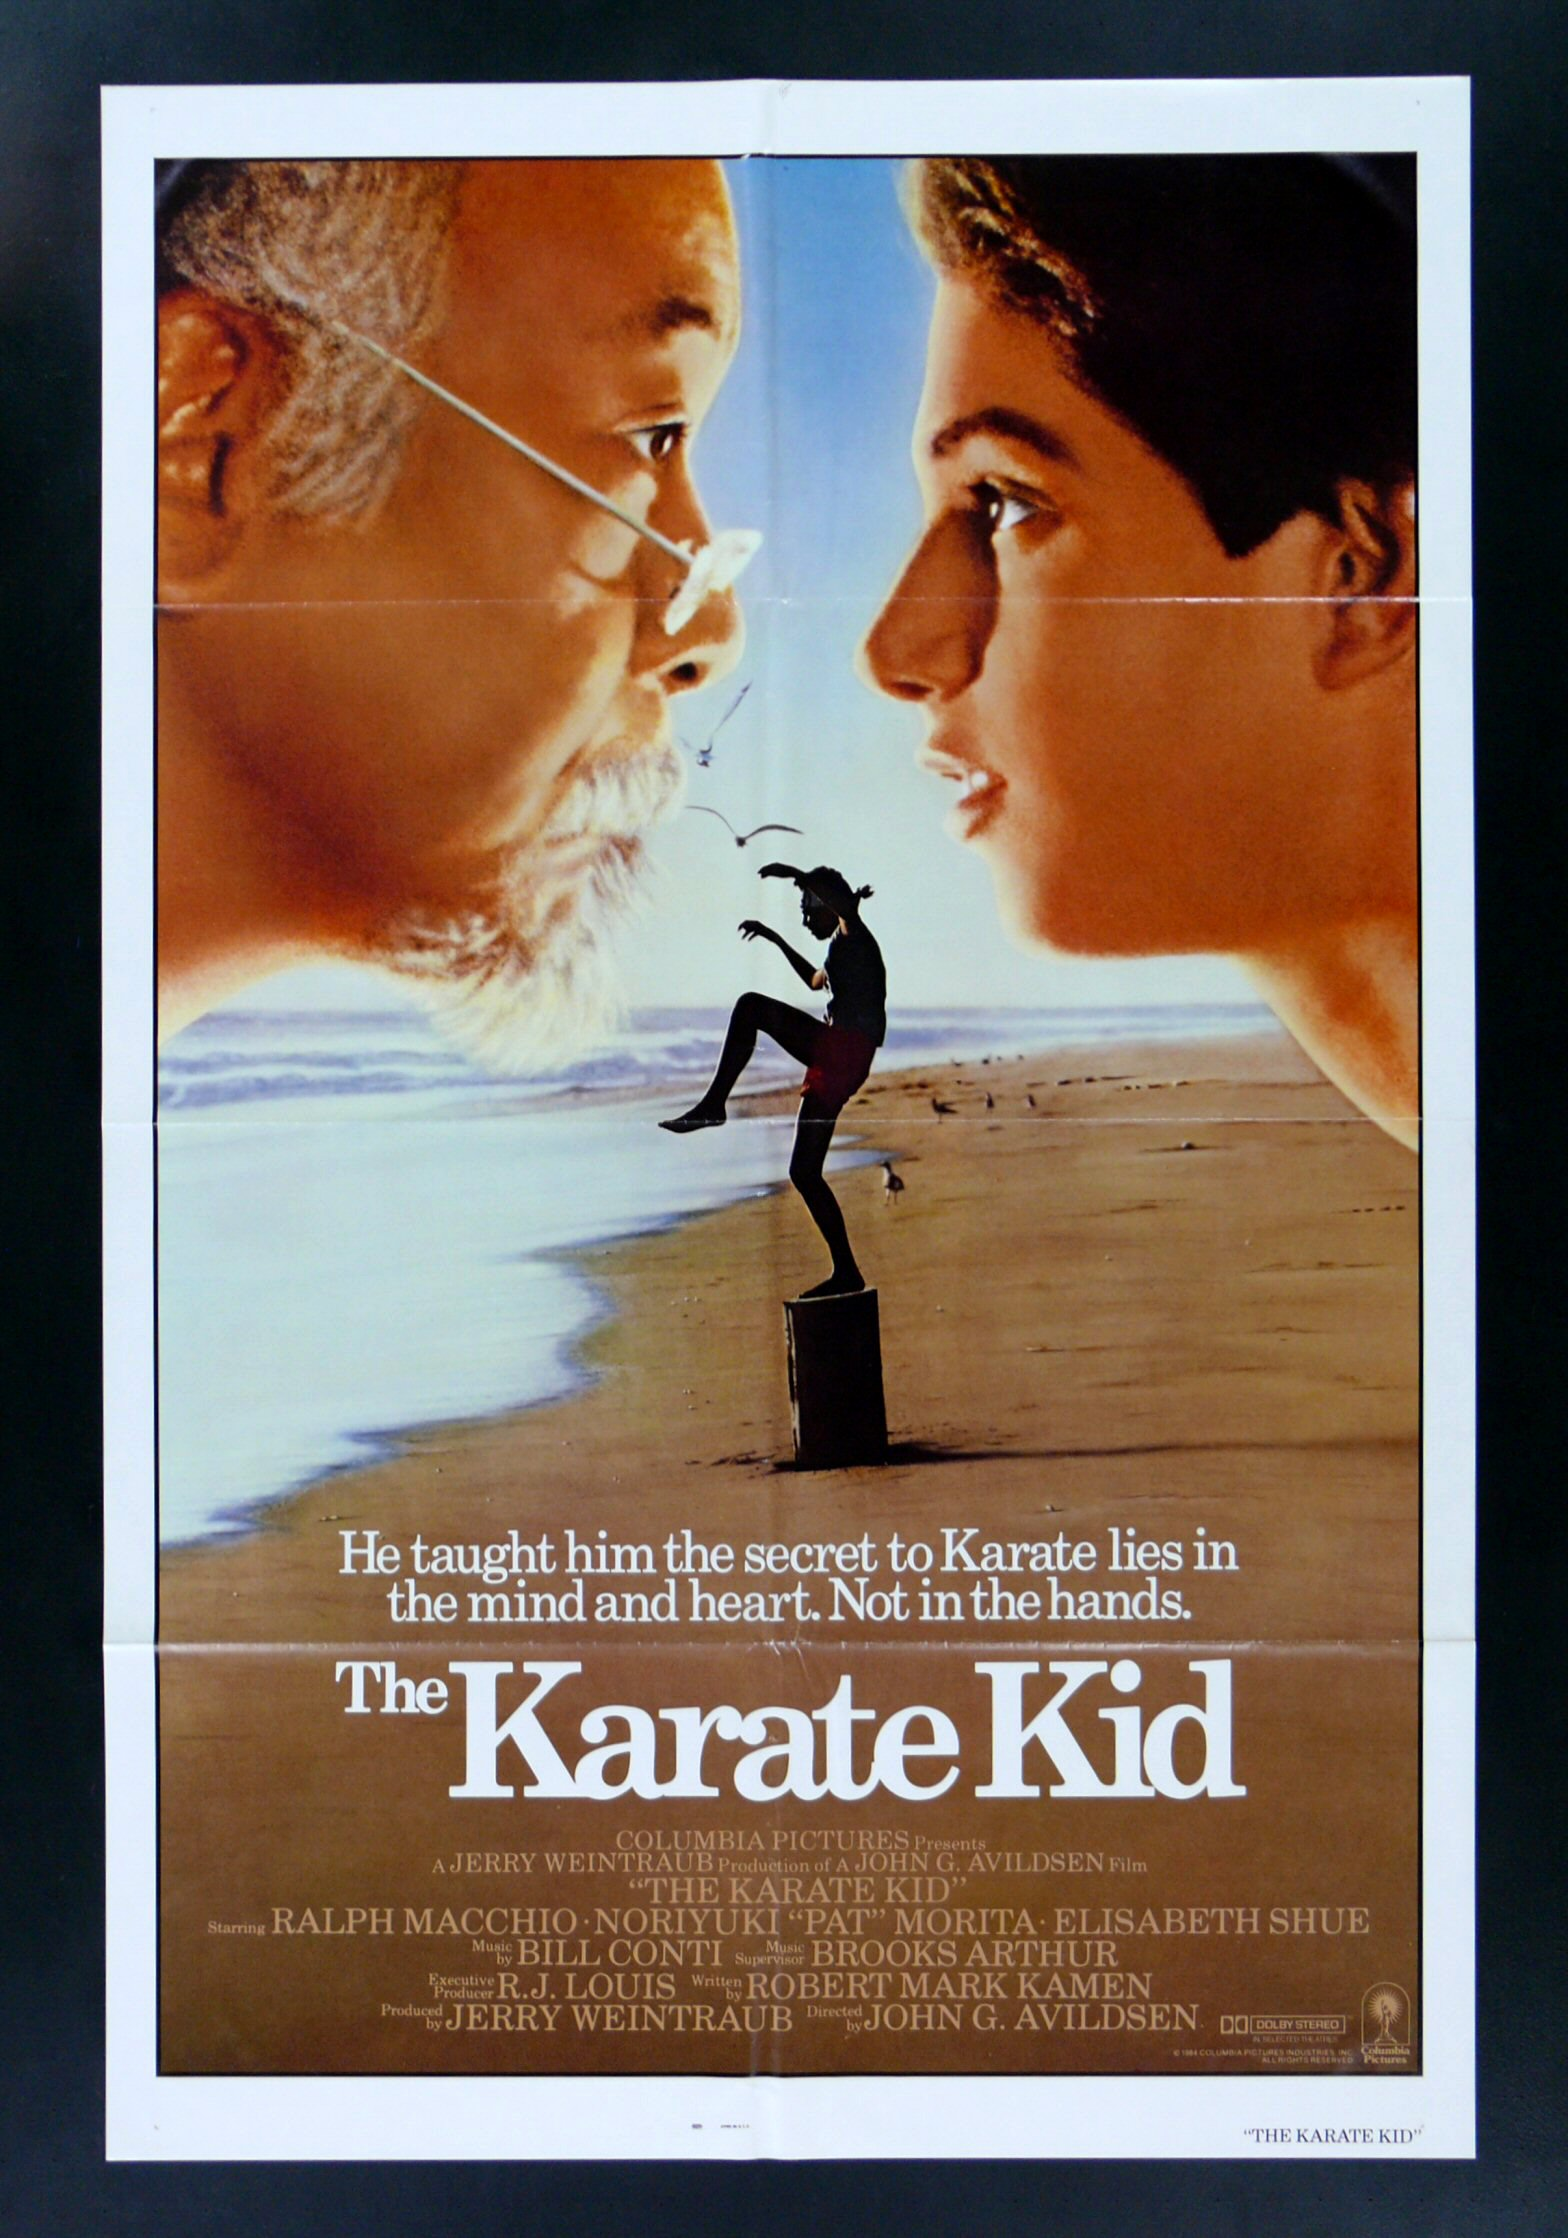 Jaquette/Covers Karaté Kid ( Karate kid )